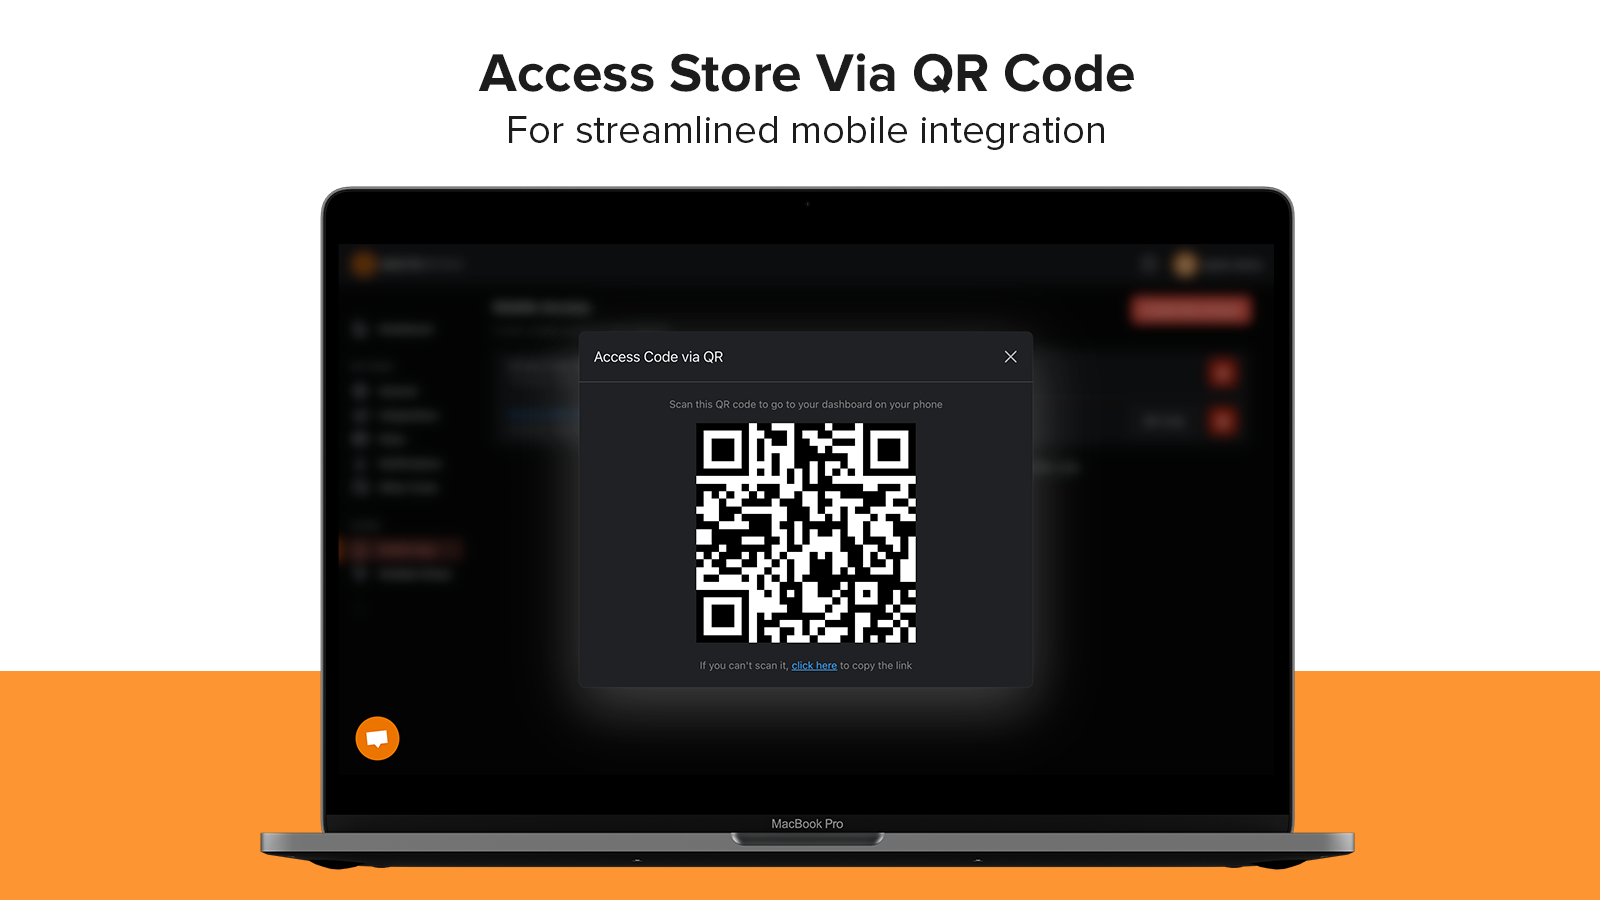 Going to mobile is a hassle? Scan a QR code and you're done!